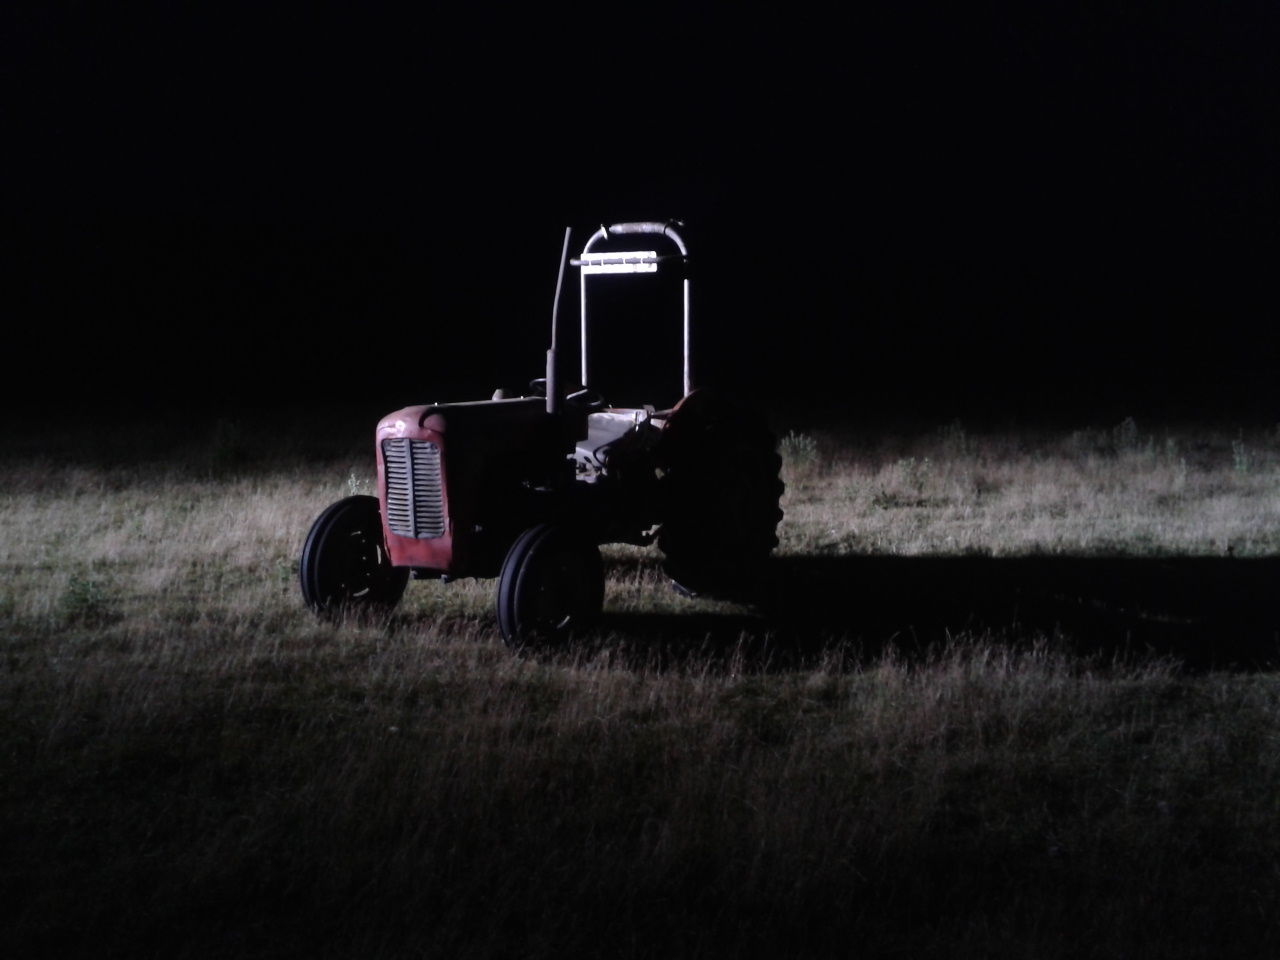 Only being able to afford to hire an HMI for 2 nights, the pressure was on for us to capture the tractor scenes on time.